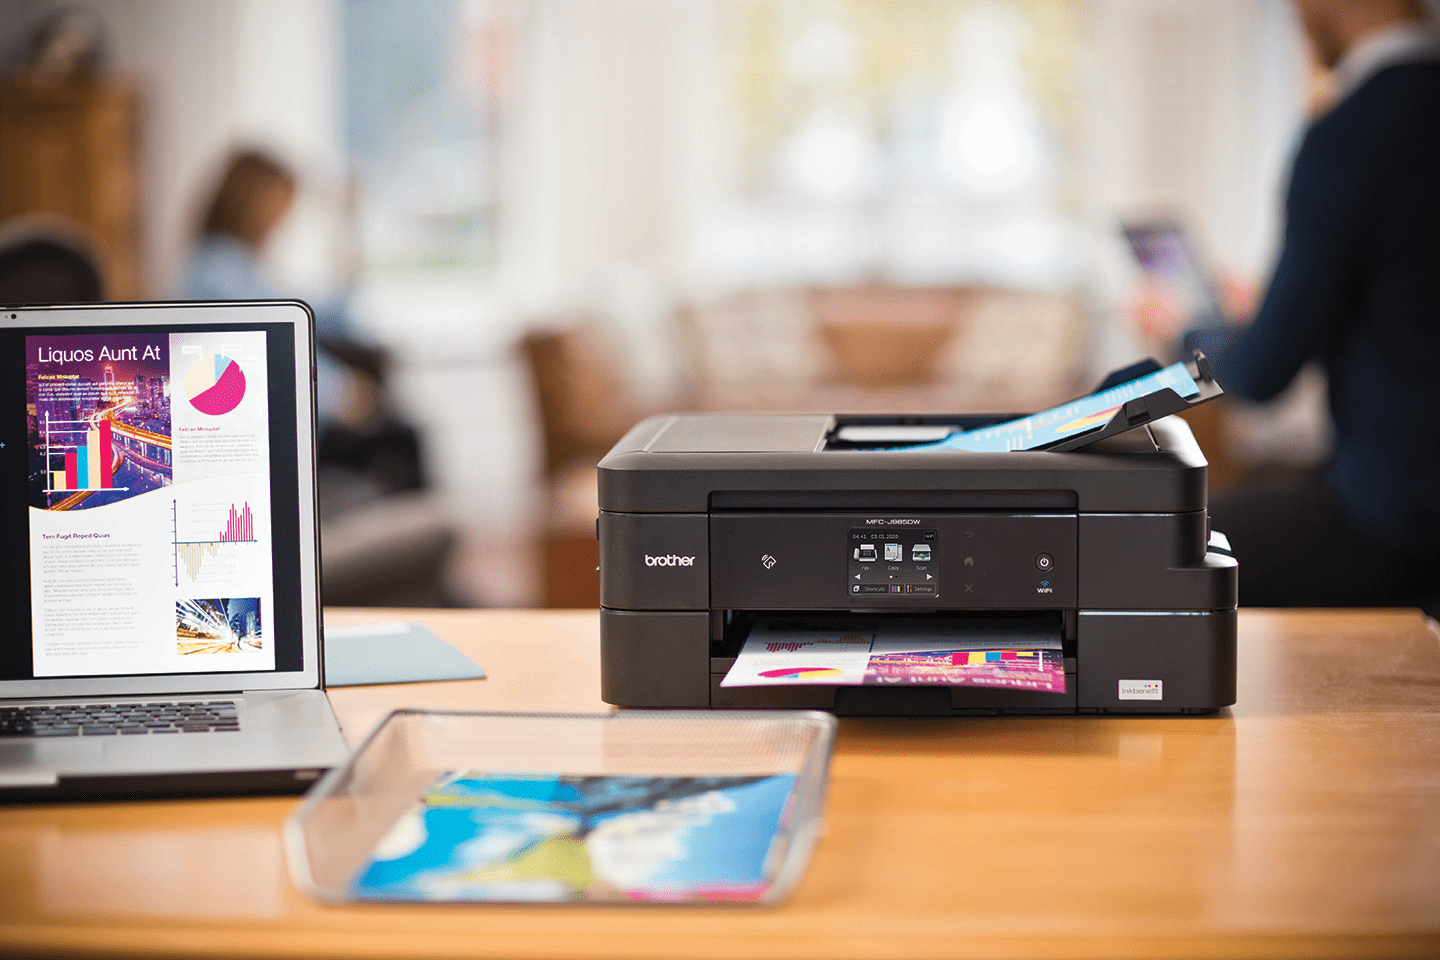 how to use nfc to print on a brother printer